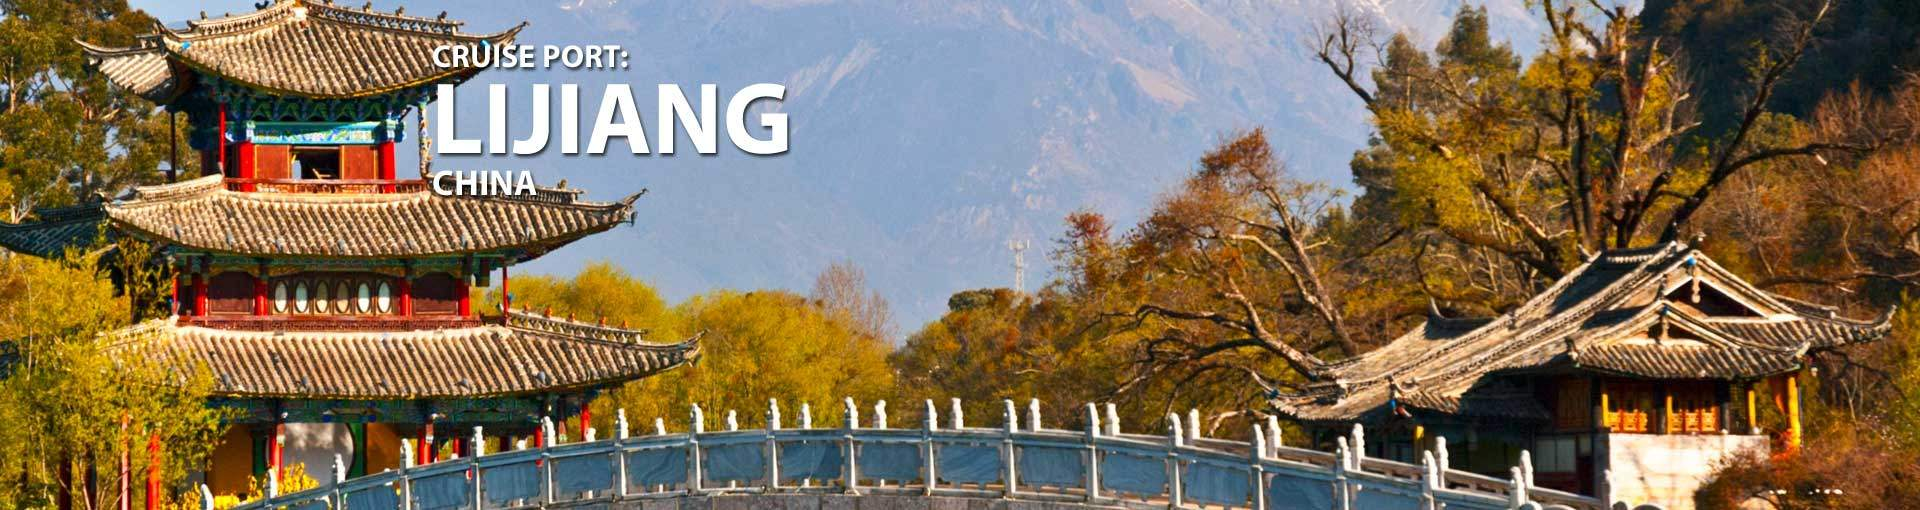 Cruises to Lijiang, China